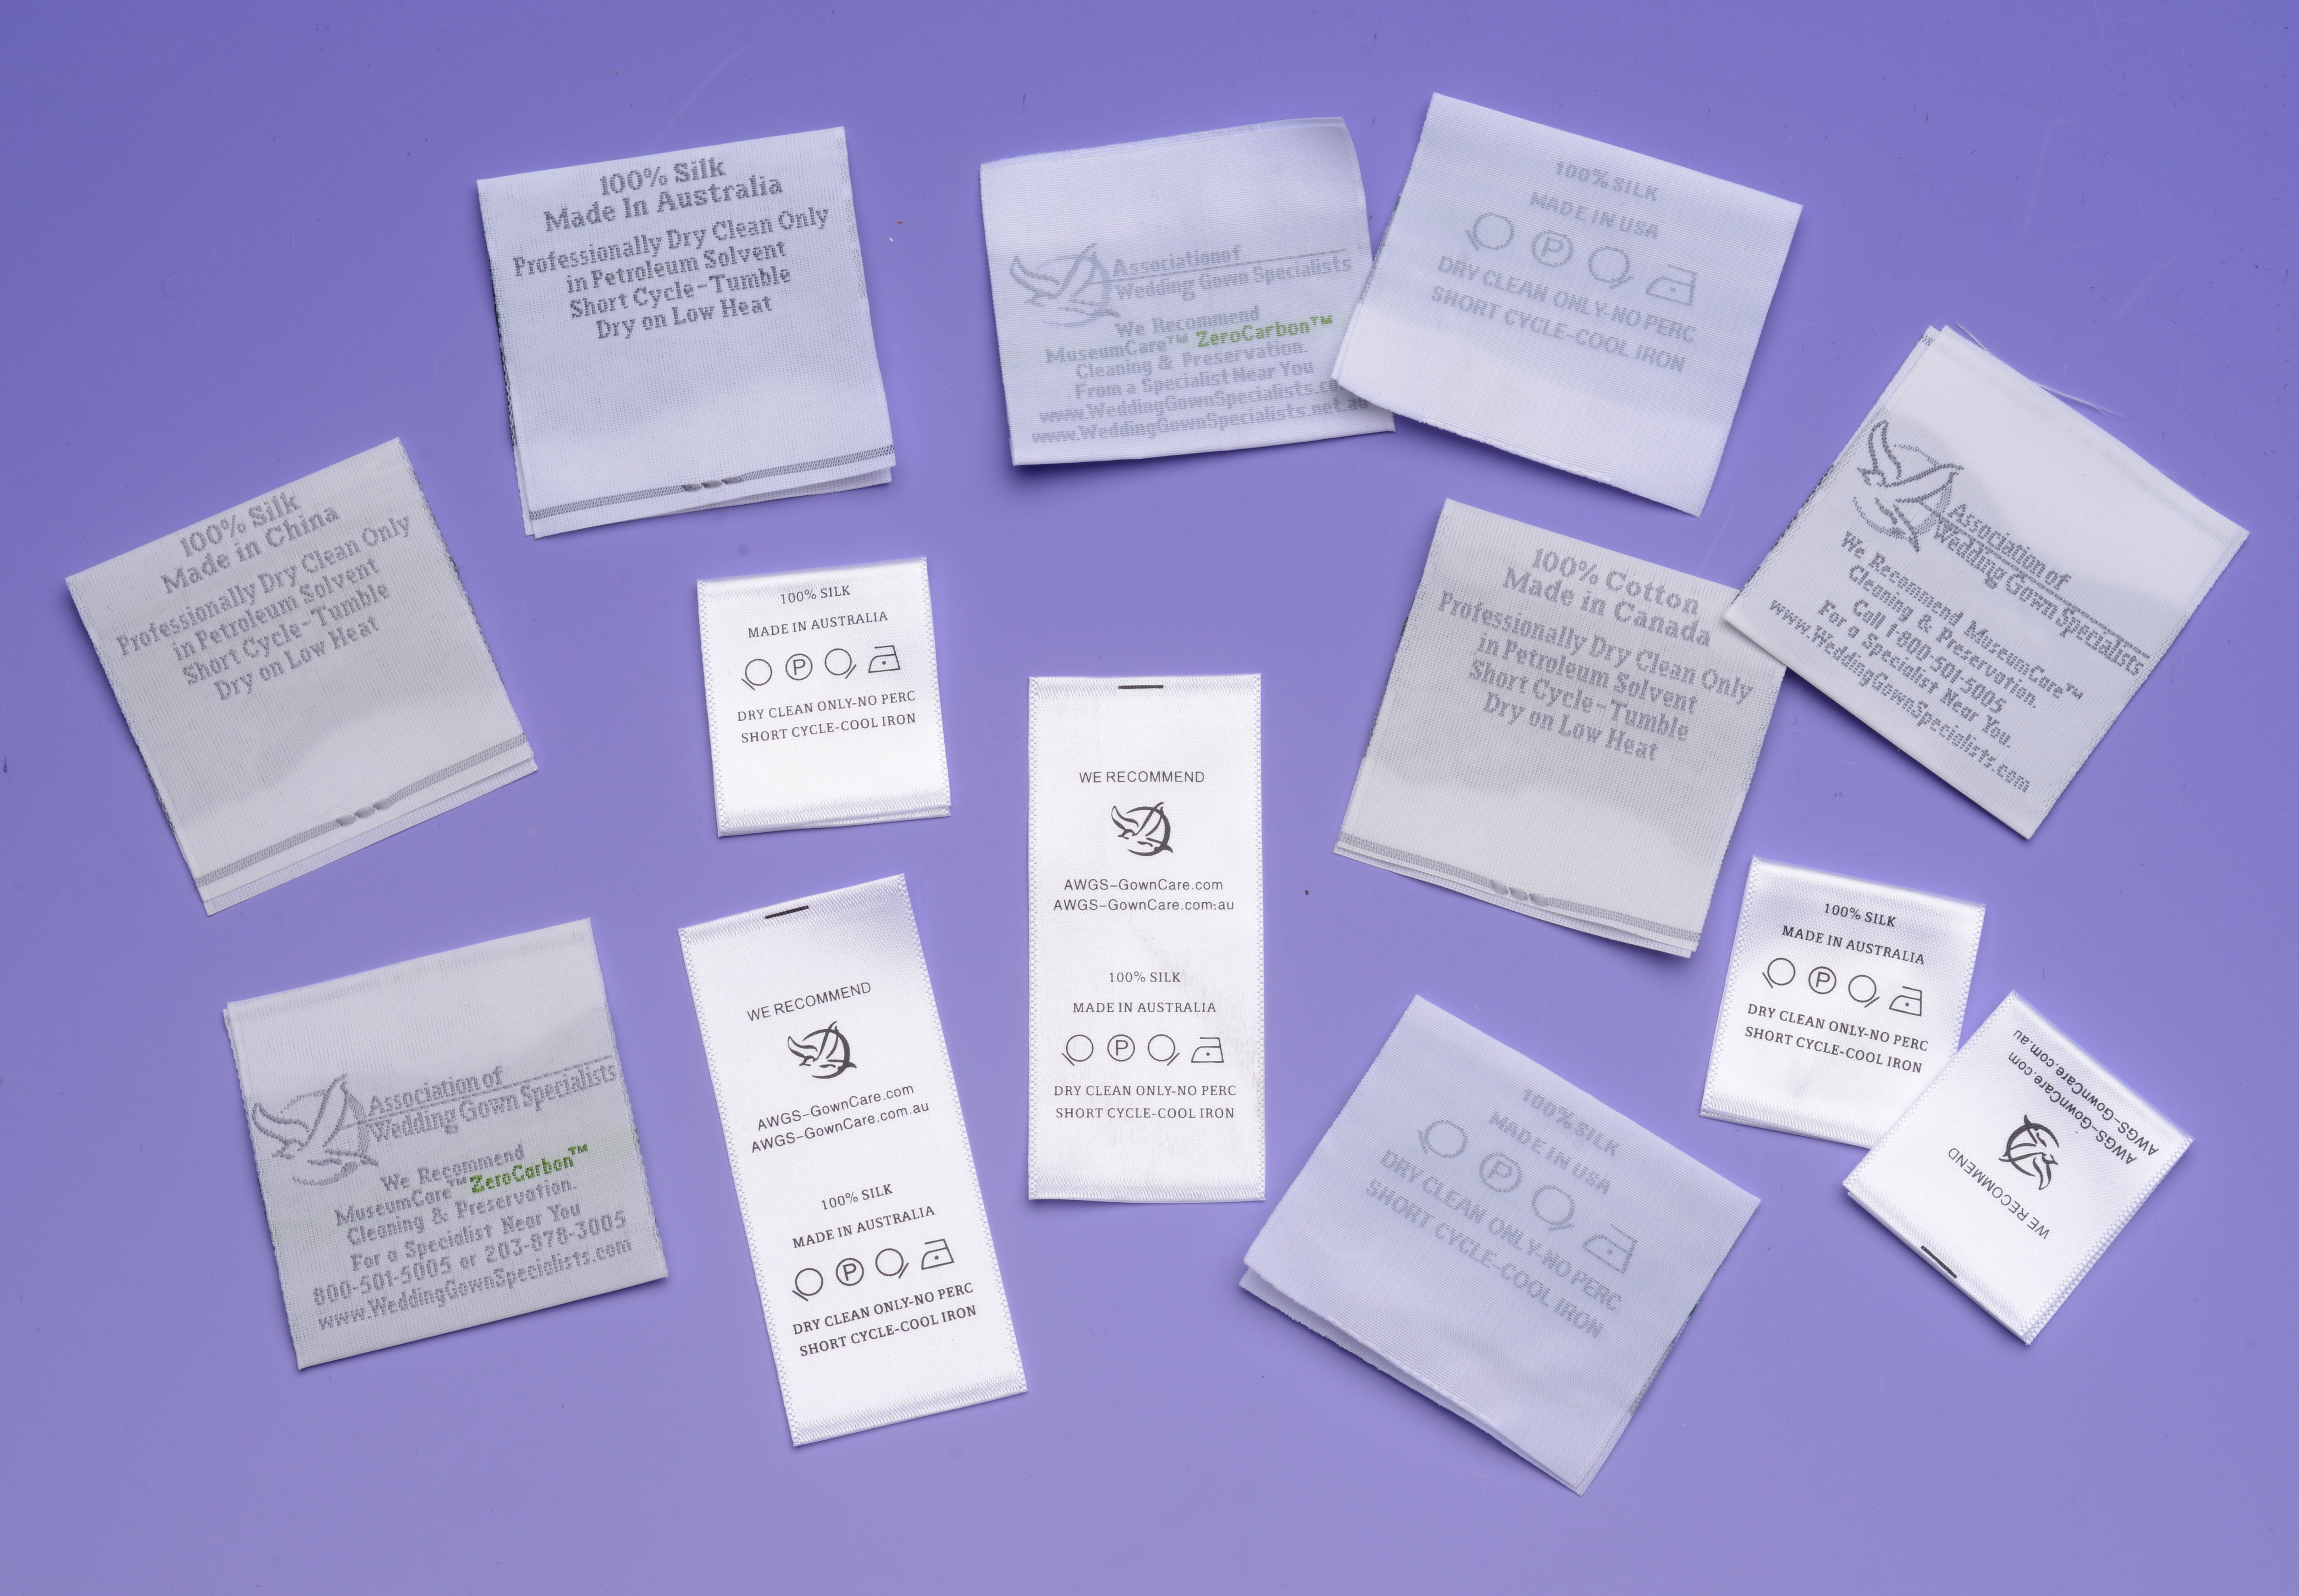 Wedding gown care labels from the Association of Wedding Gown Specialists